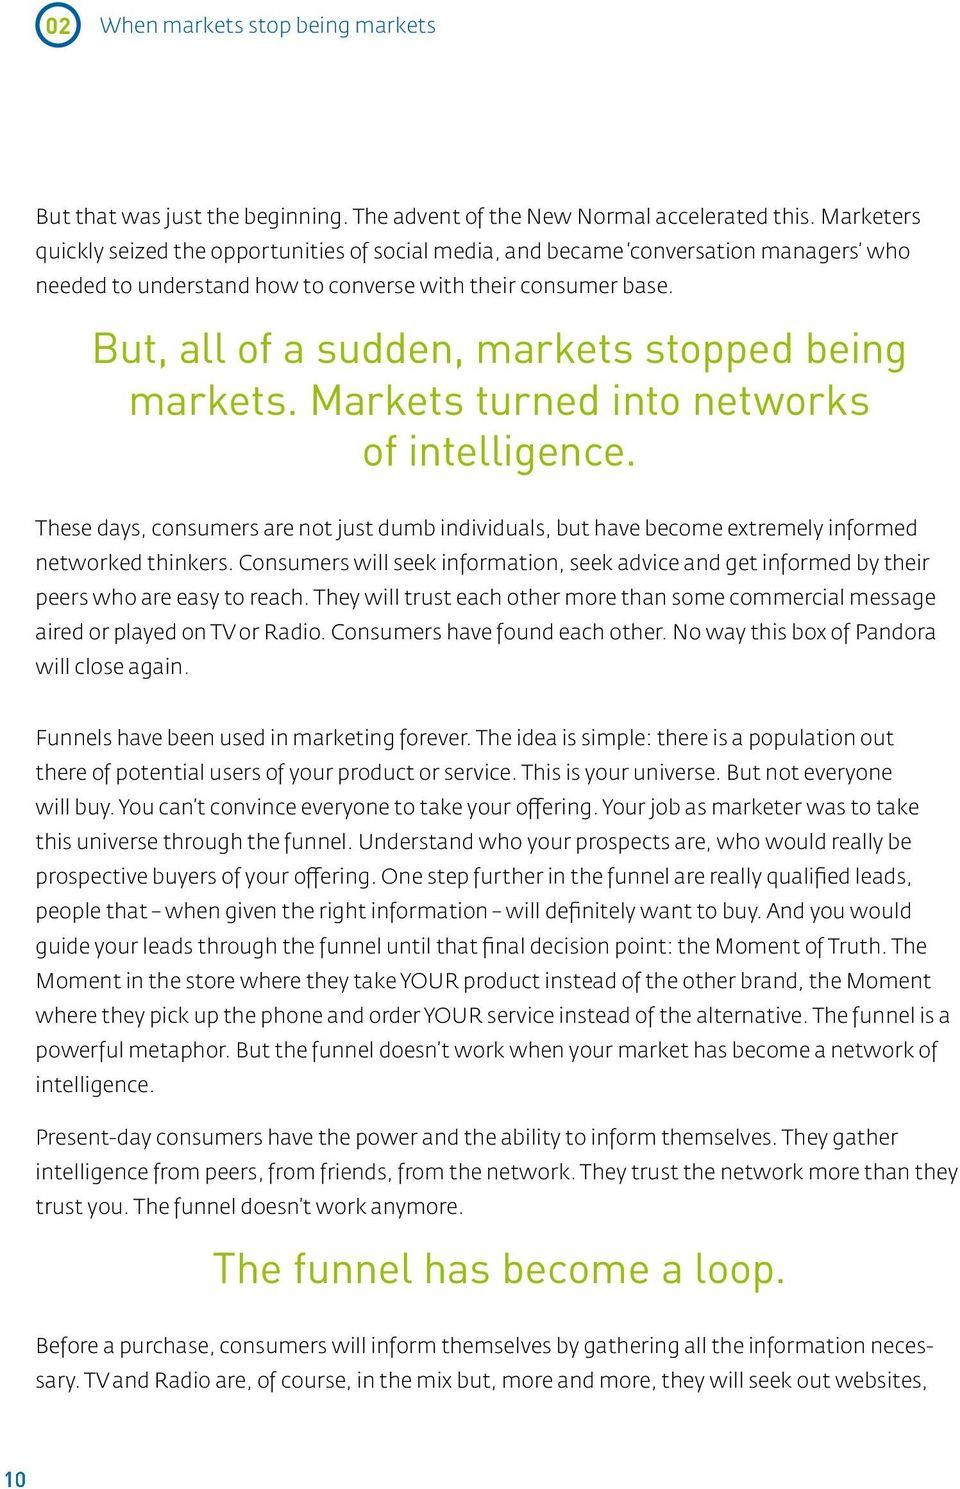 But, all of a sudden, markets stopped being markets. Markets turned into networks of intelligence.